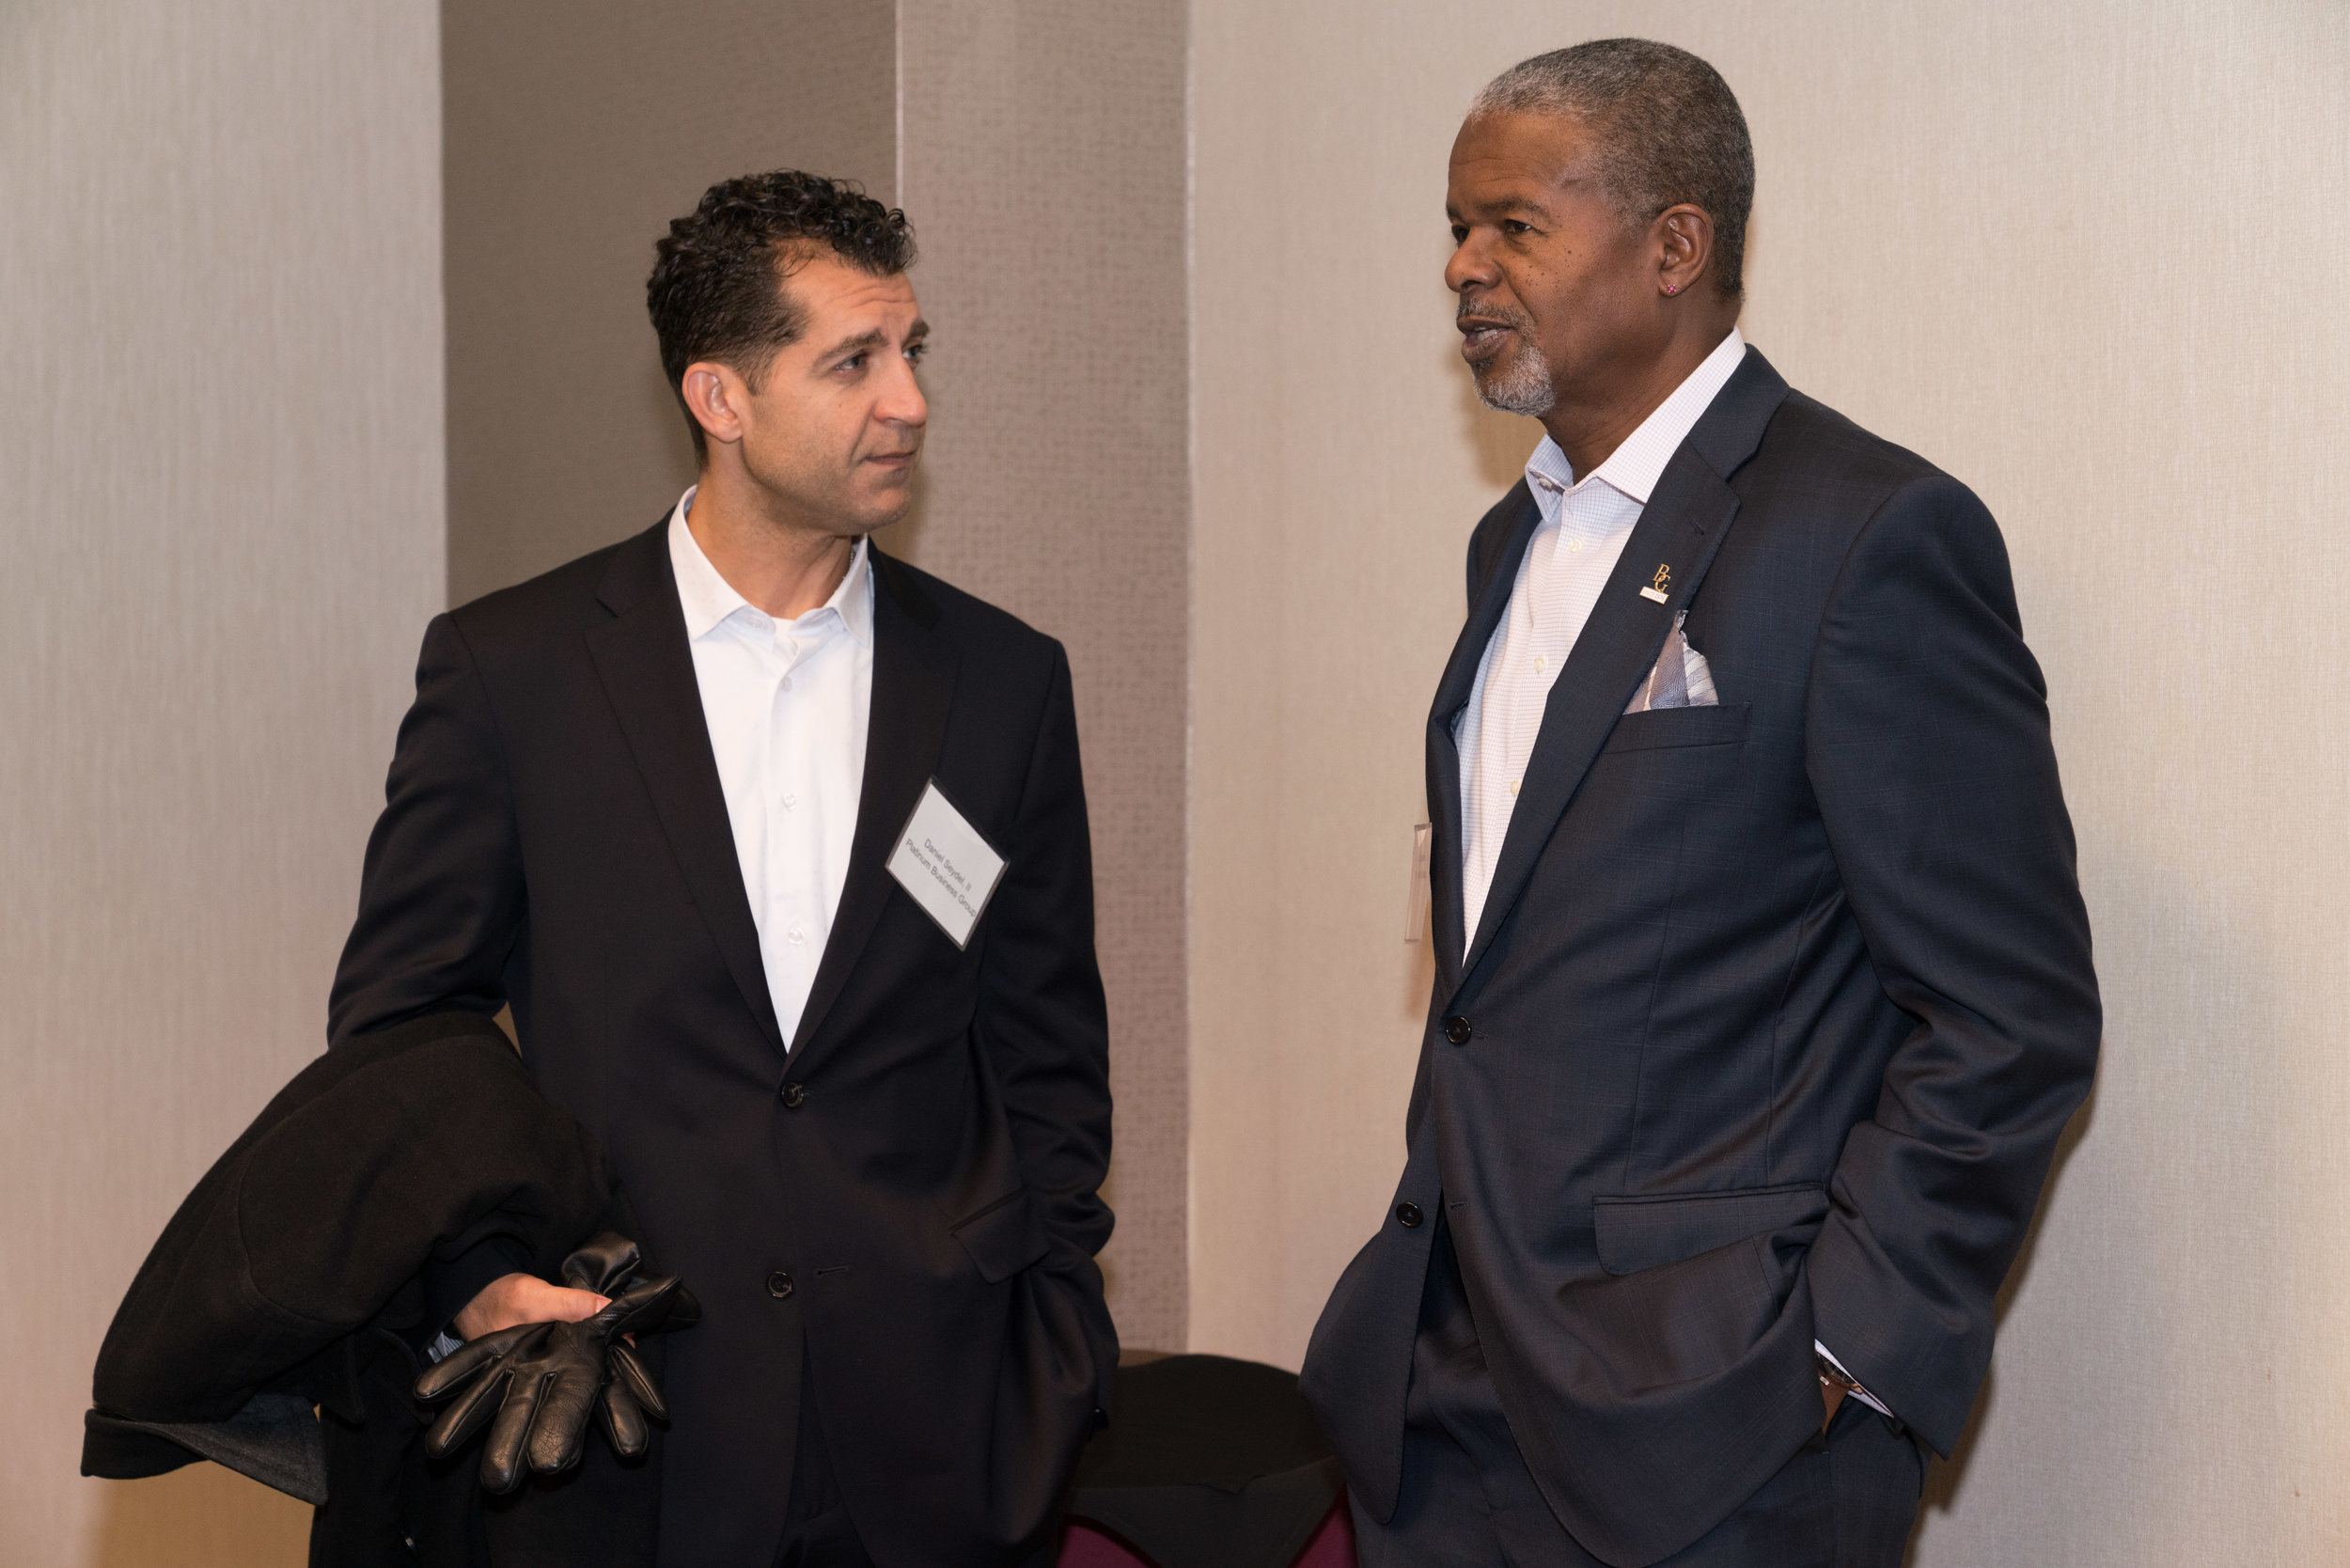 Daniel Seydel, II, Platinum Business Group and Darryl Russell, The Russell Group, LLC